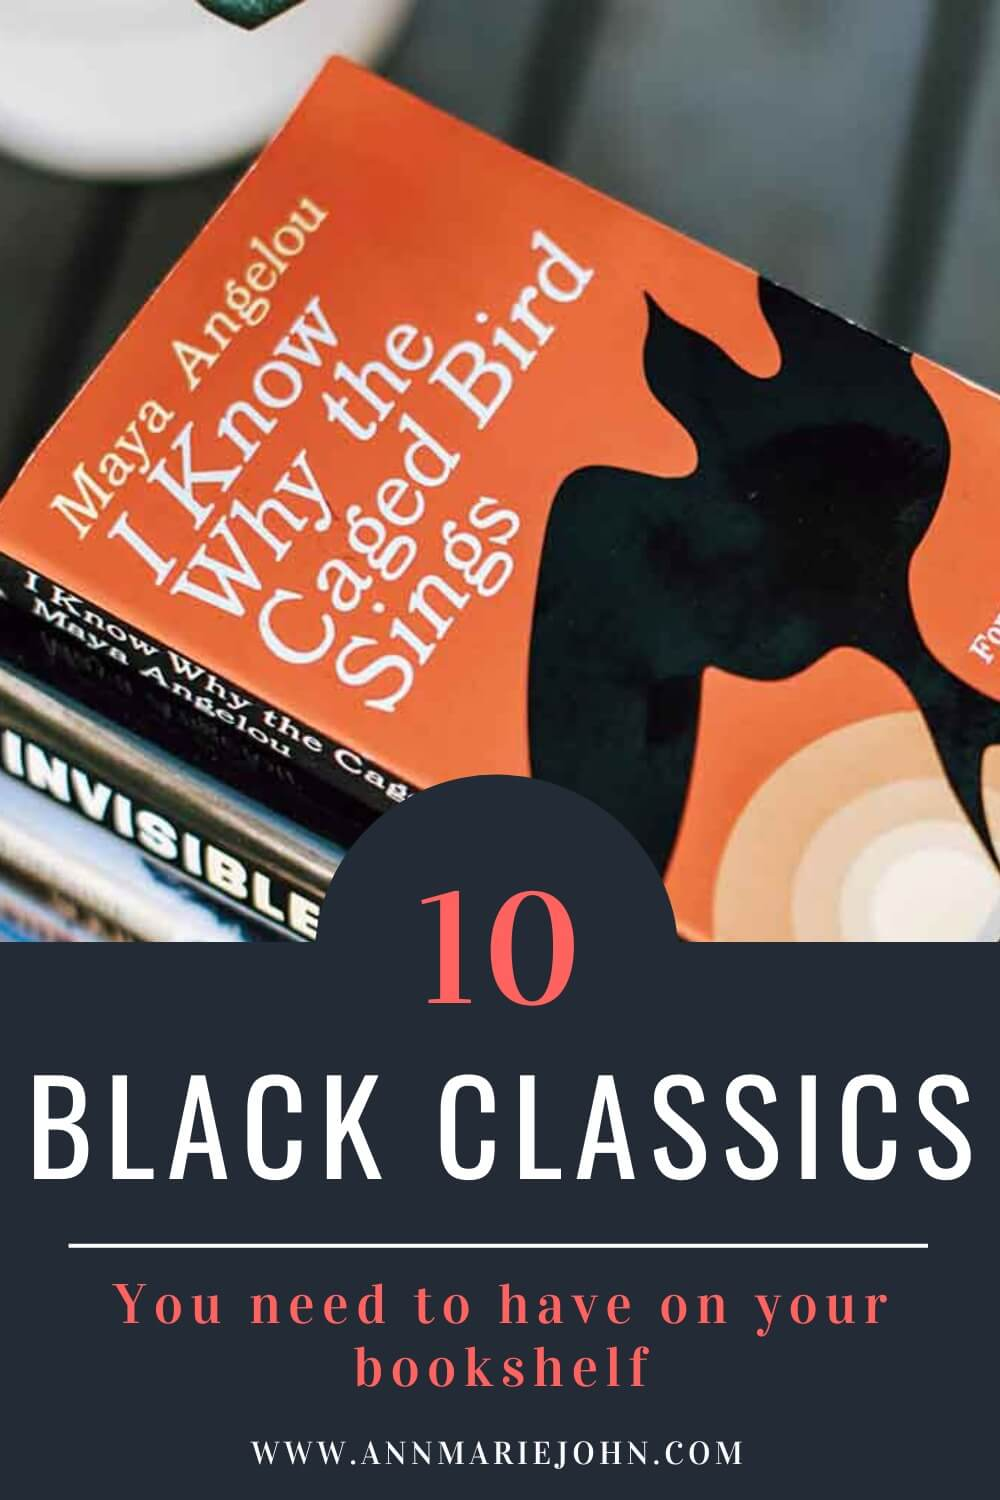 Black Literary Classics You Should Have on Your Bookshelf